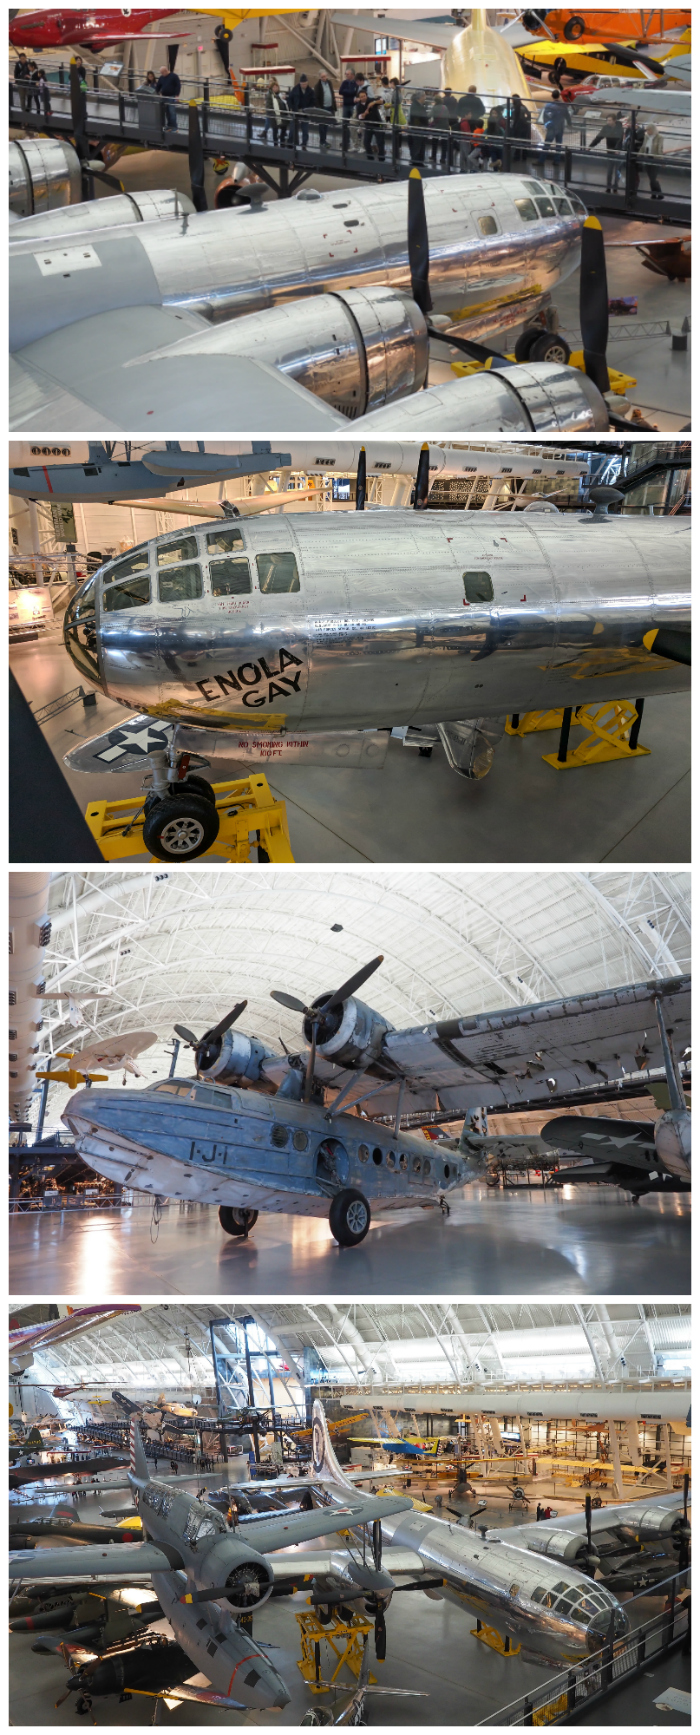 WWII Sites in Washington DC and Arlington, Virginia that you shouldn't miss | Smithsonian National Air and Space Museum, Stephen F. Udvar-Hazy Center, Enola Gay